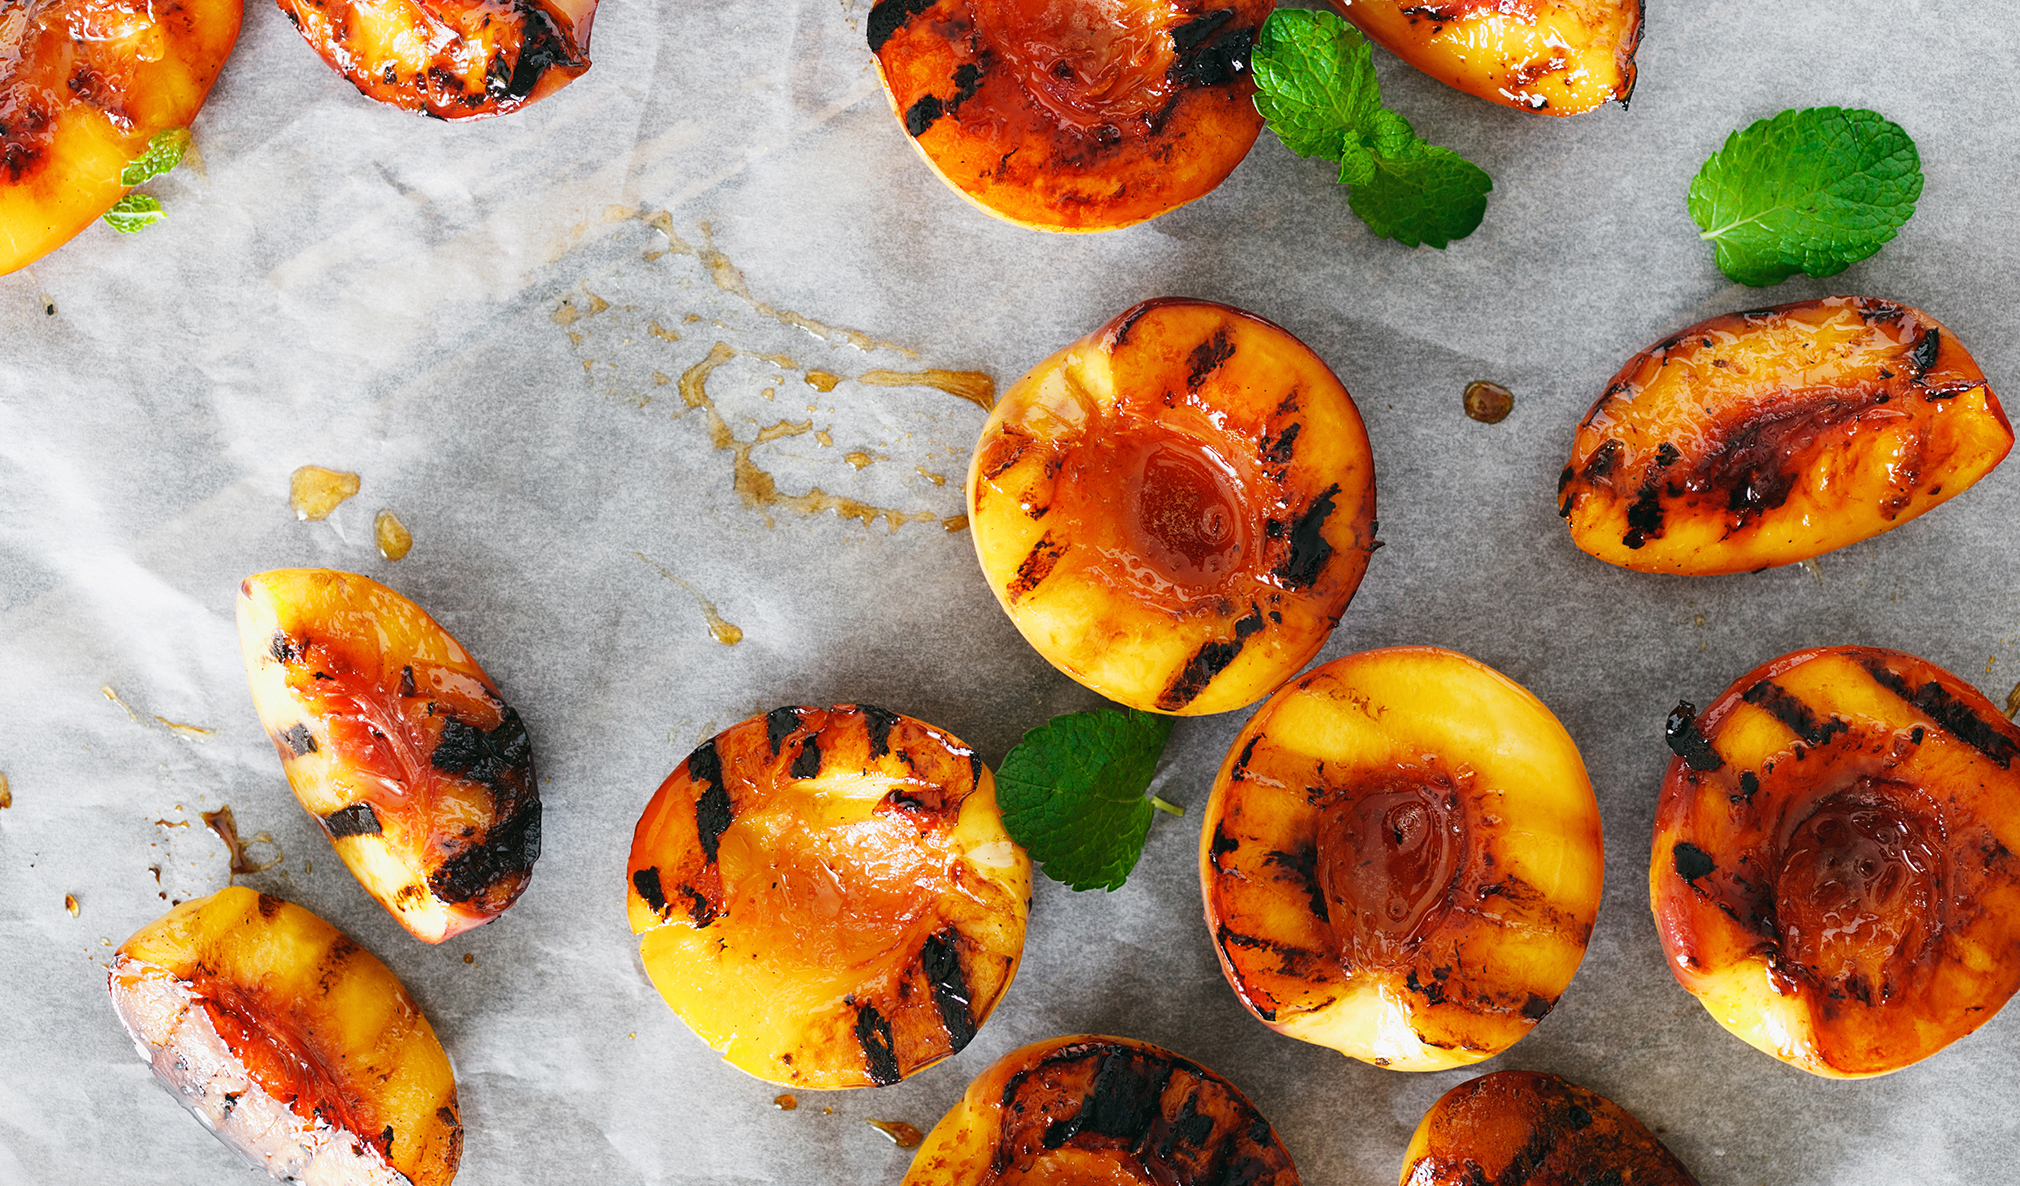 Grilled Peaches - The Peach Pelican